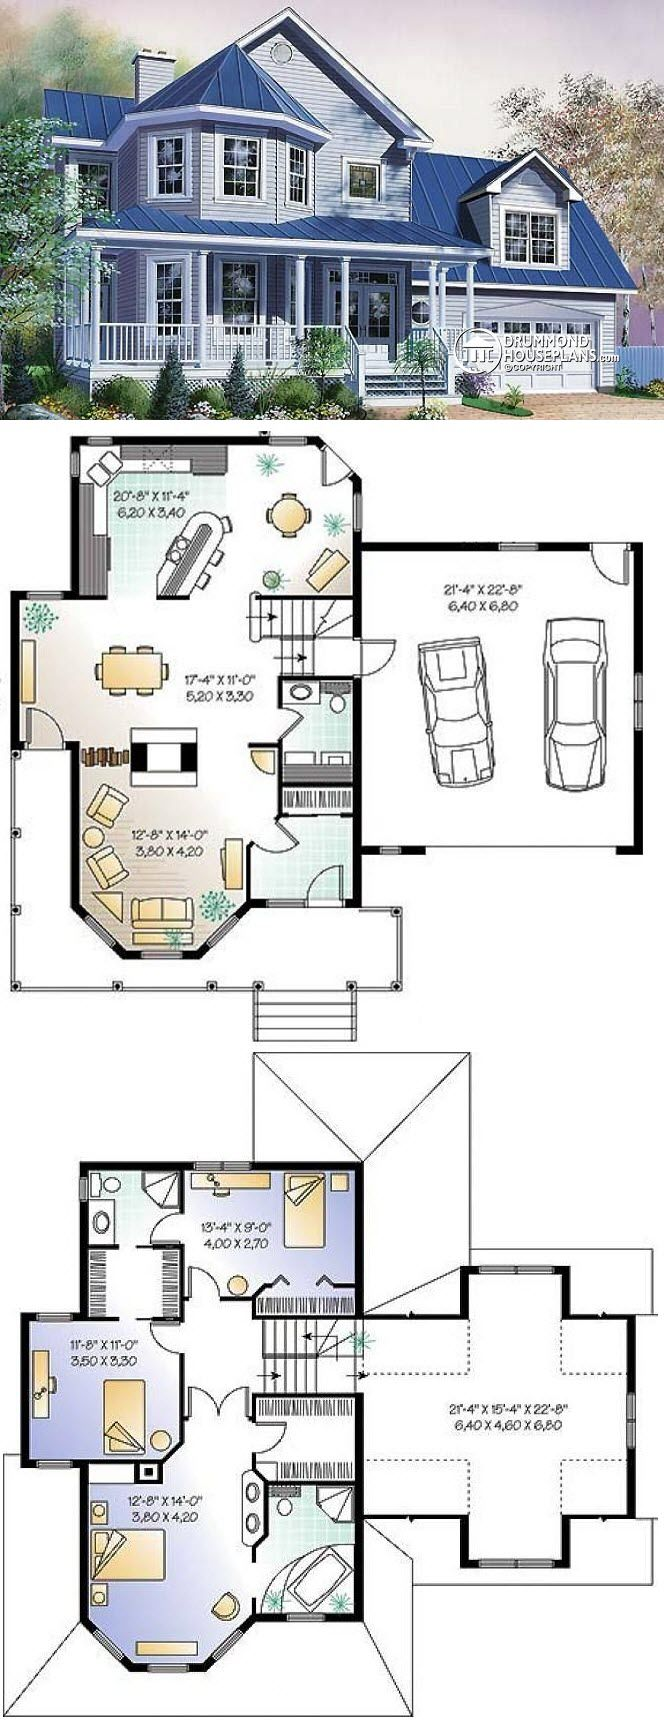 Photo of Lets take out that upstairs bath & walk-through closet & make that a deck. And n…